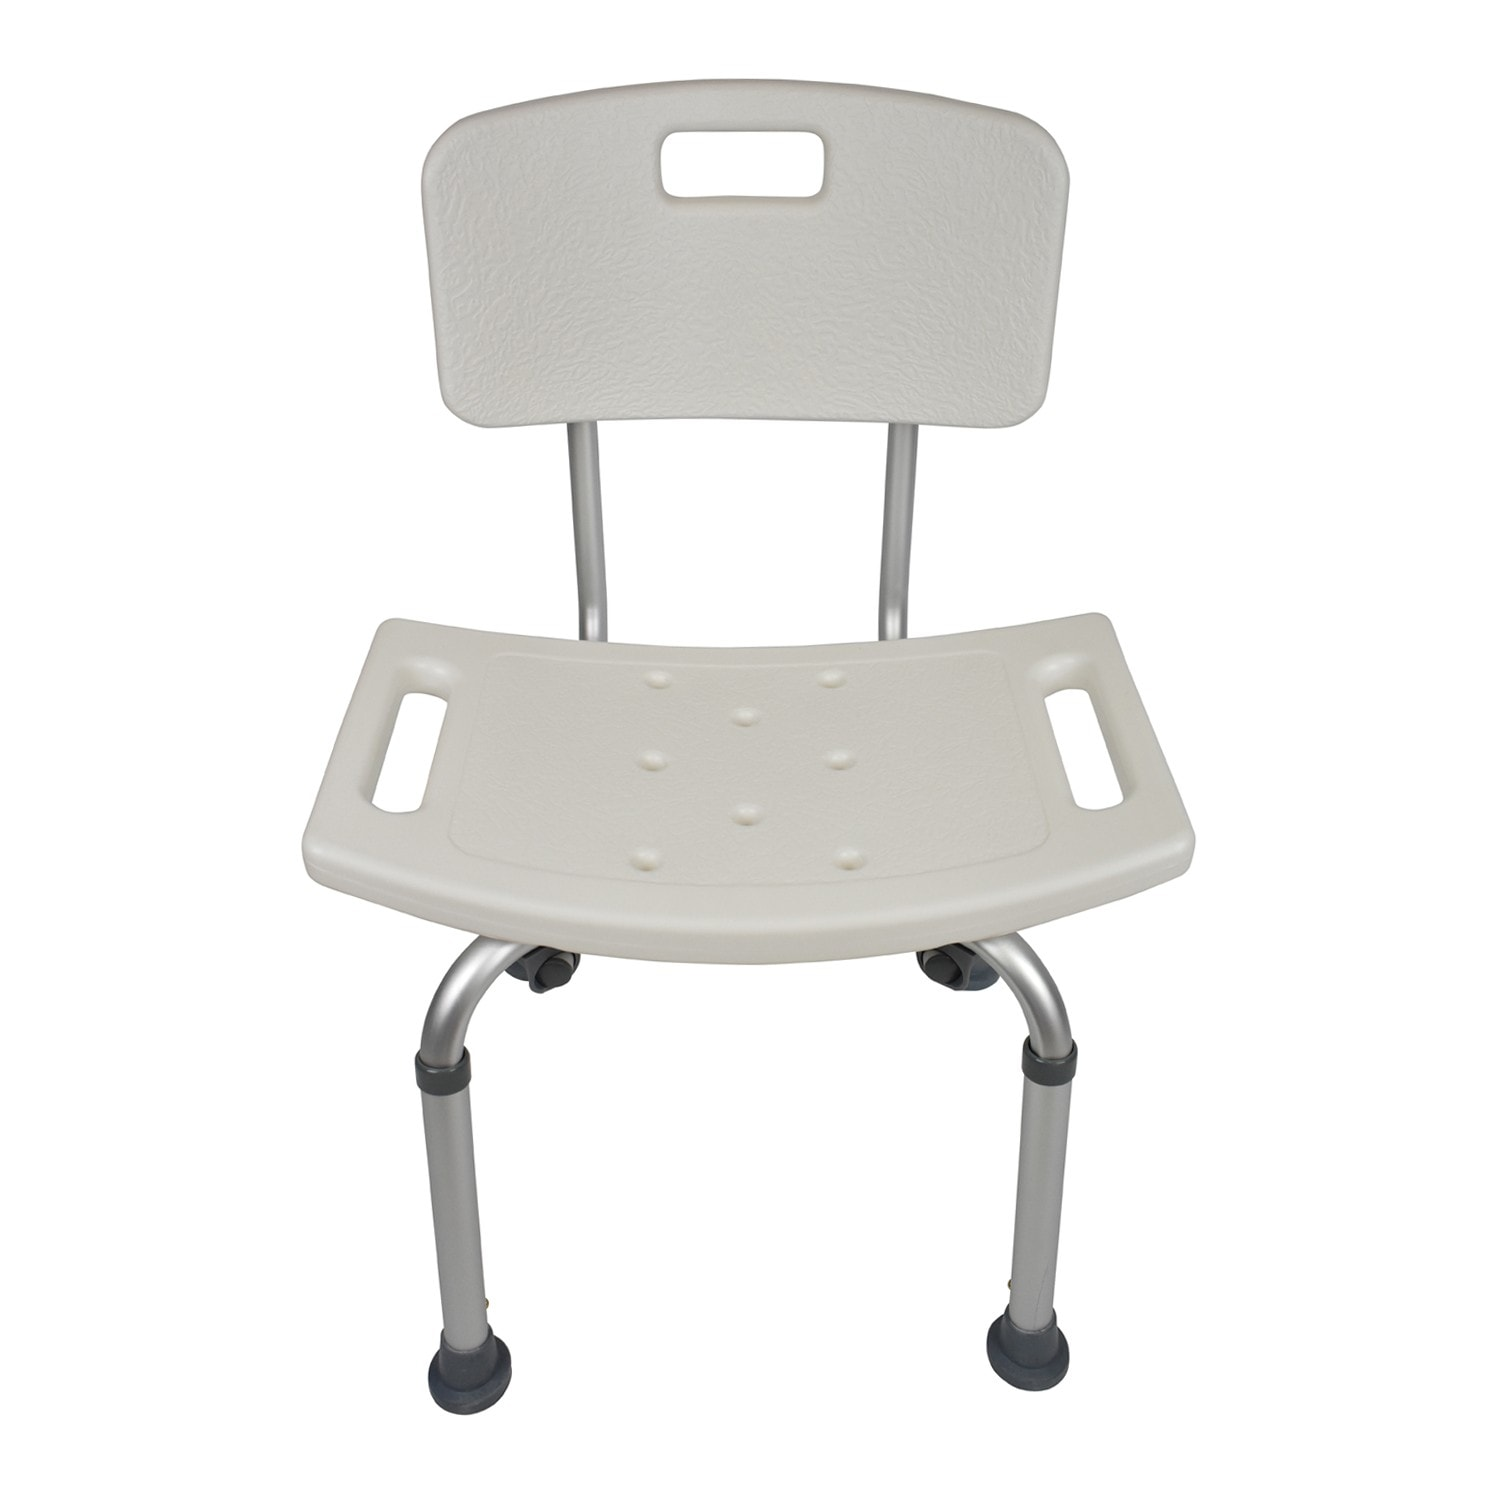 Shower Chair With Removable Back Back Removed